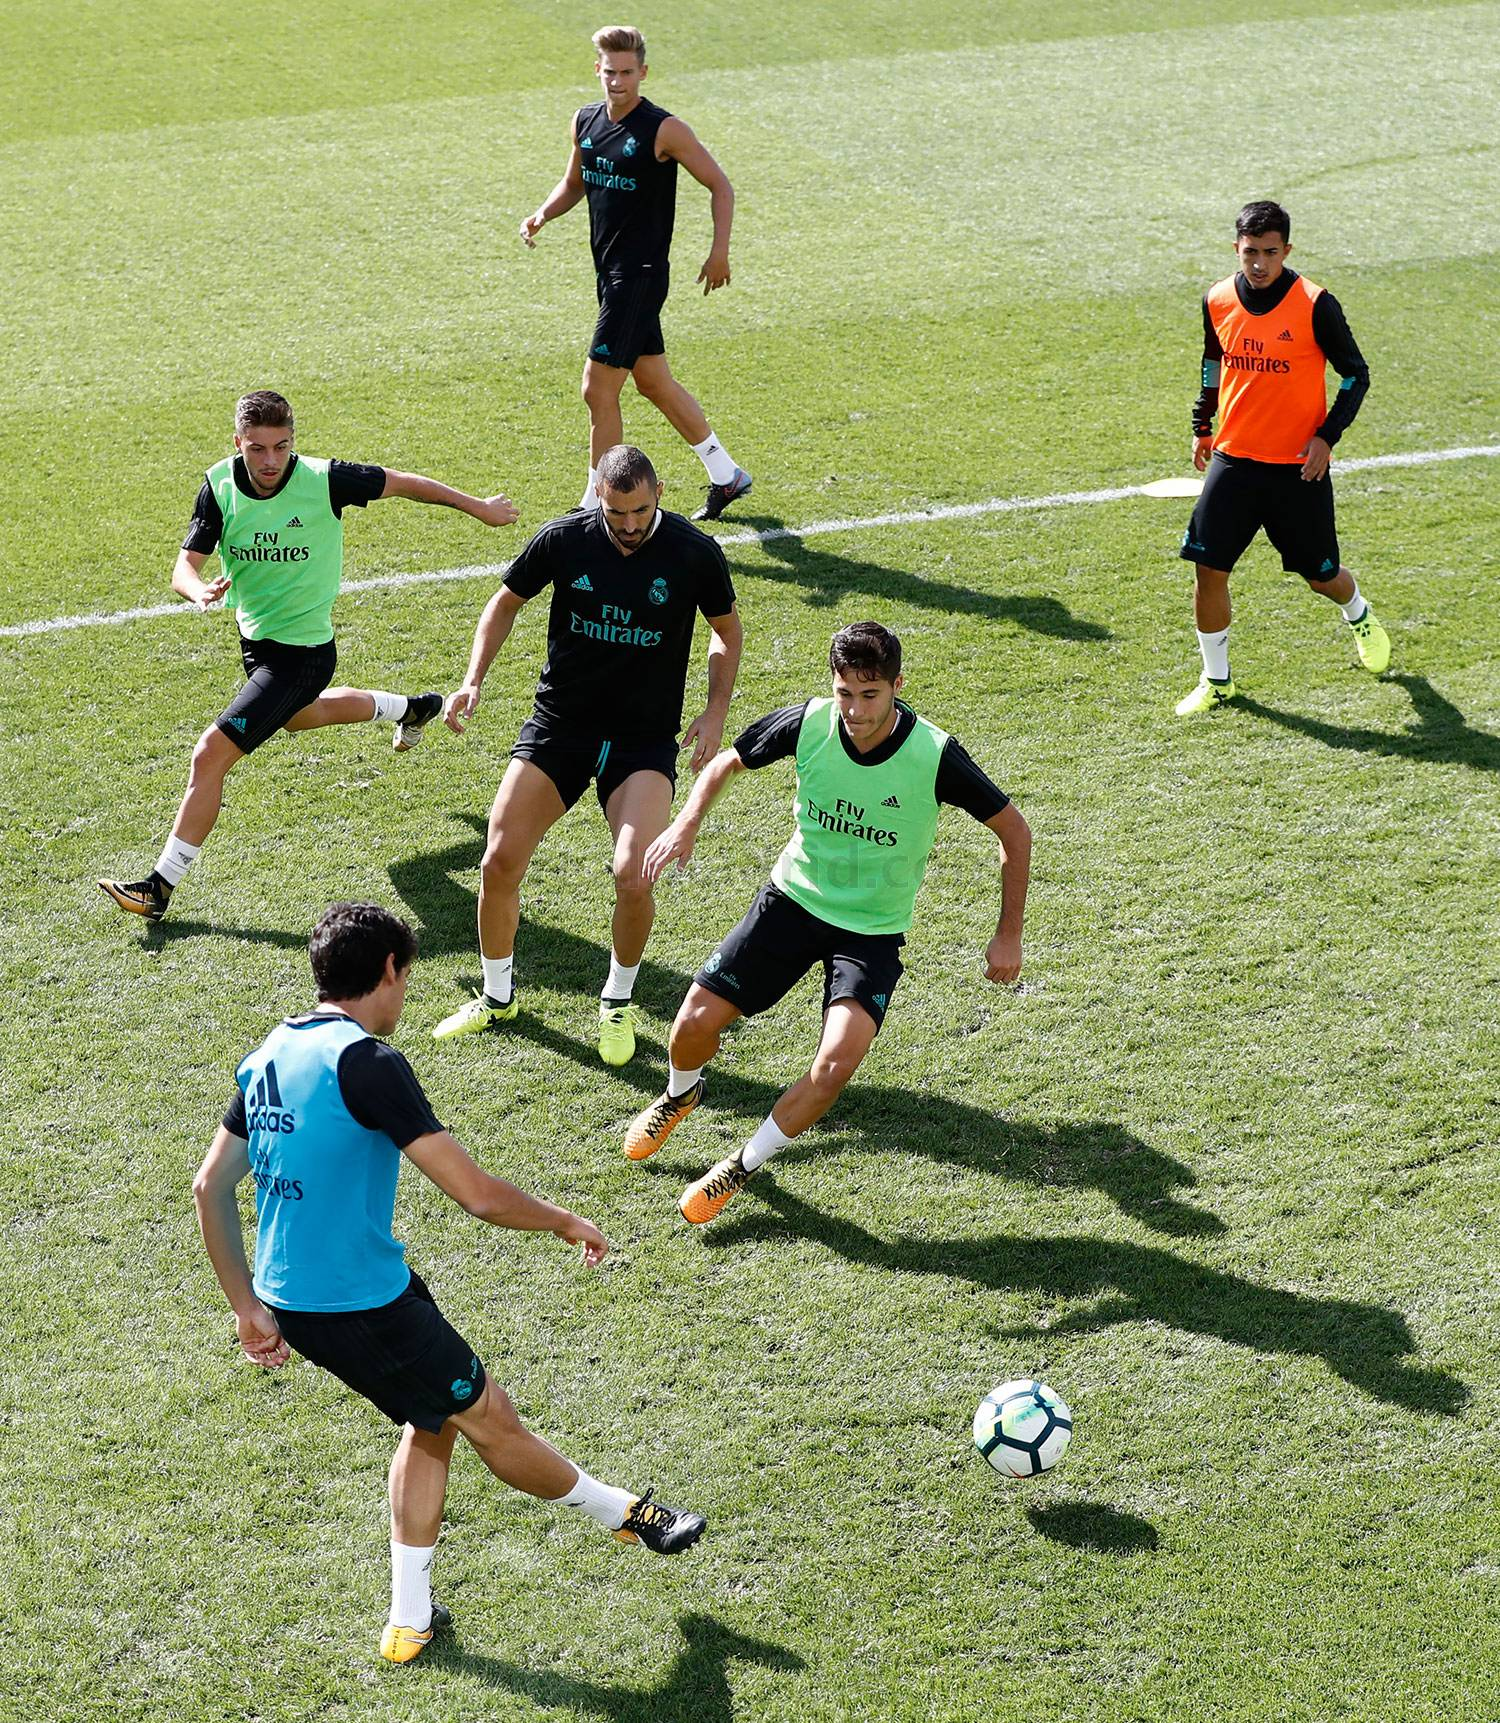 Real Madrid - Entrenamiento del Real Madrid - 30-08-2017